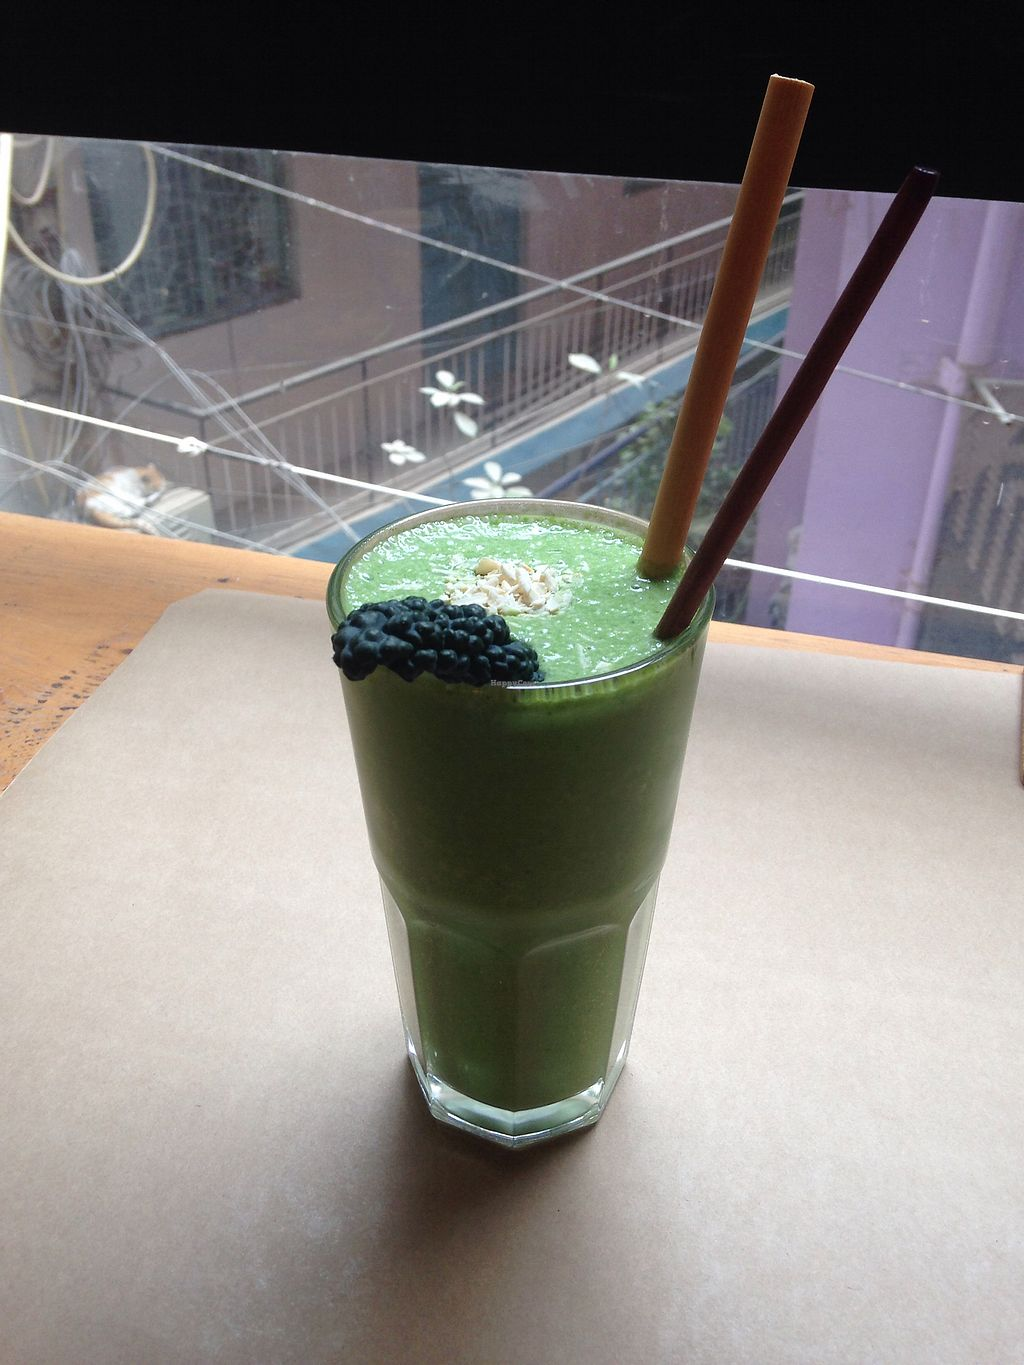 "Photo of Greenr Cafe  by <a href=""/members/profile/SophieCarolyn"">SophieCarolyn</a> <br/>Coco Loco Smoothie <br/> March 3, 2018  - <a href='/contact/abuse/image/81923/366196'>Report</a>"